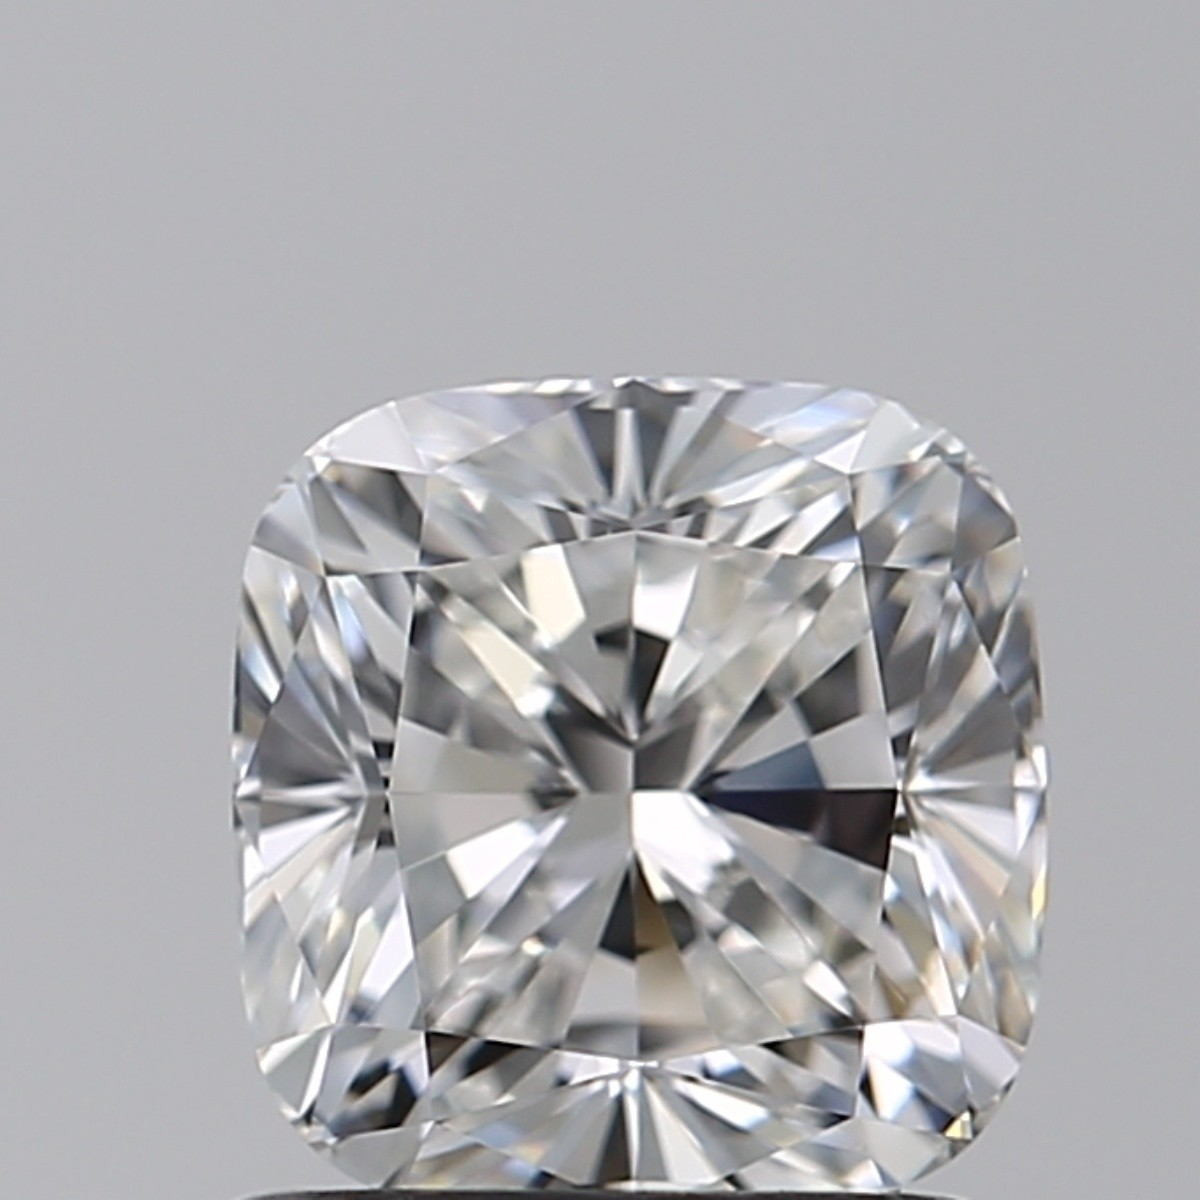 1.20 Carat Cushion Brilliant Diamond (G/VVS1)